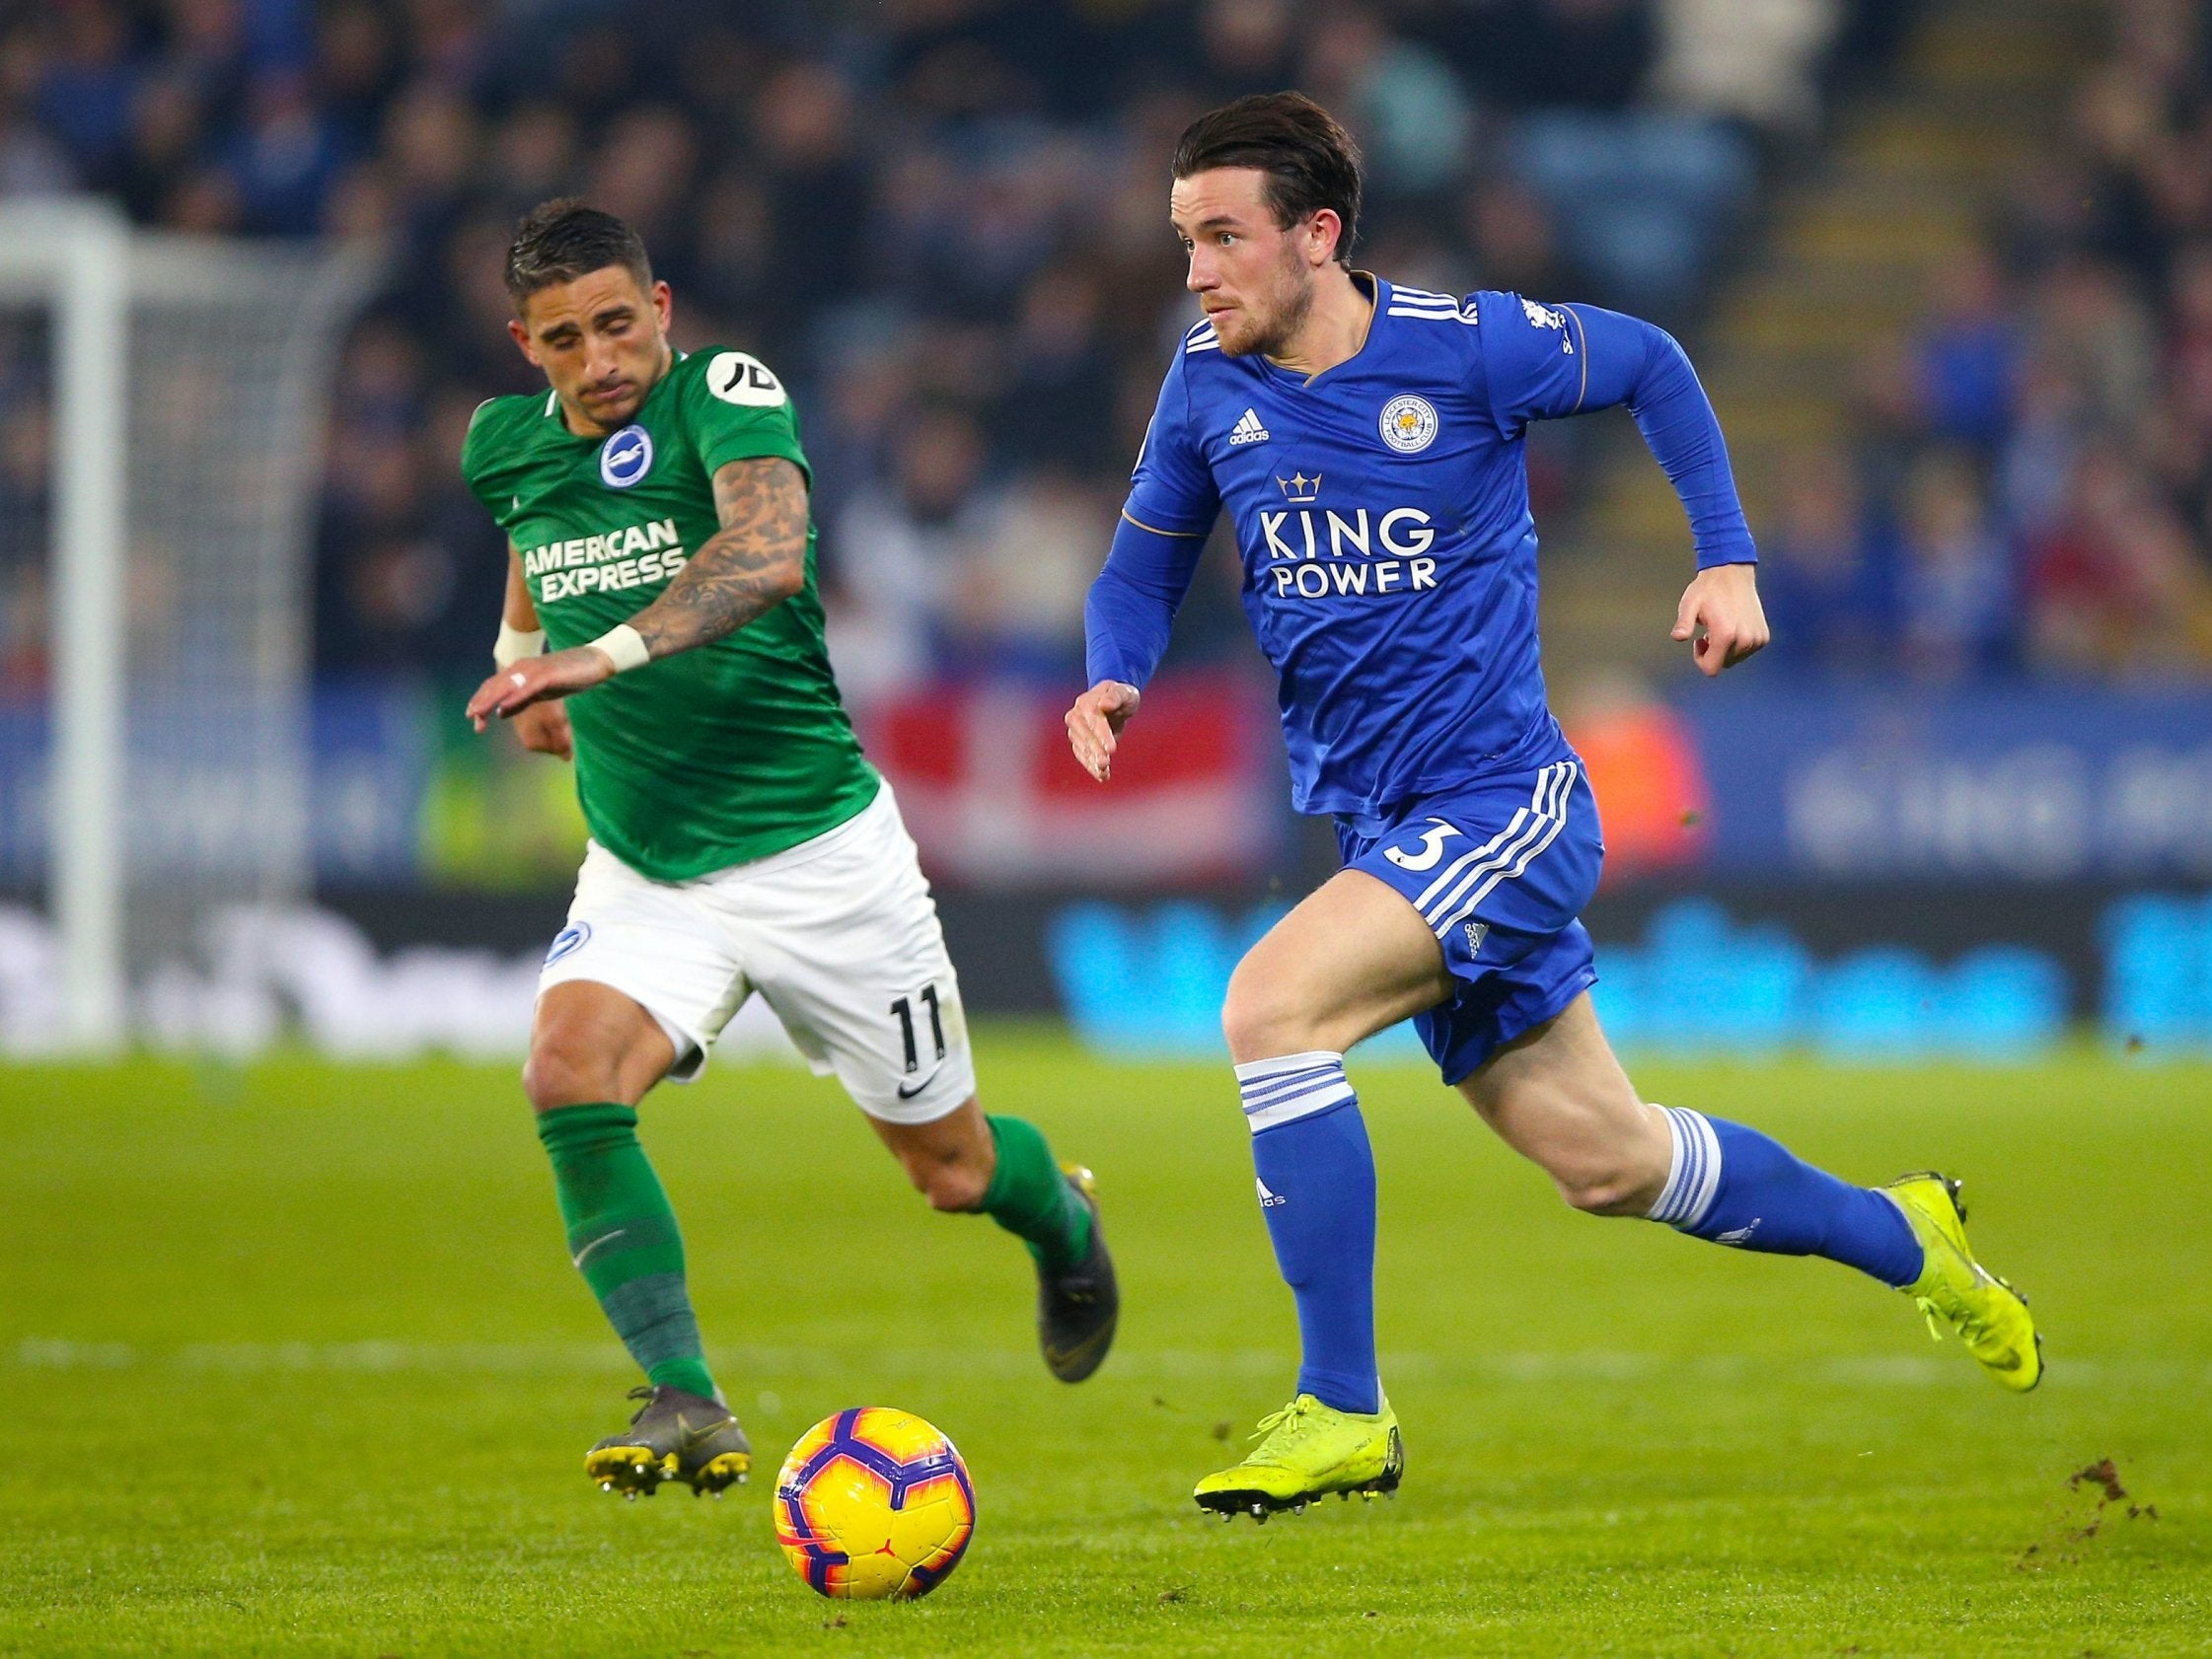 Leicester City: Brendan Rodgers sends message to Man City over transfer target Ben Chilwell